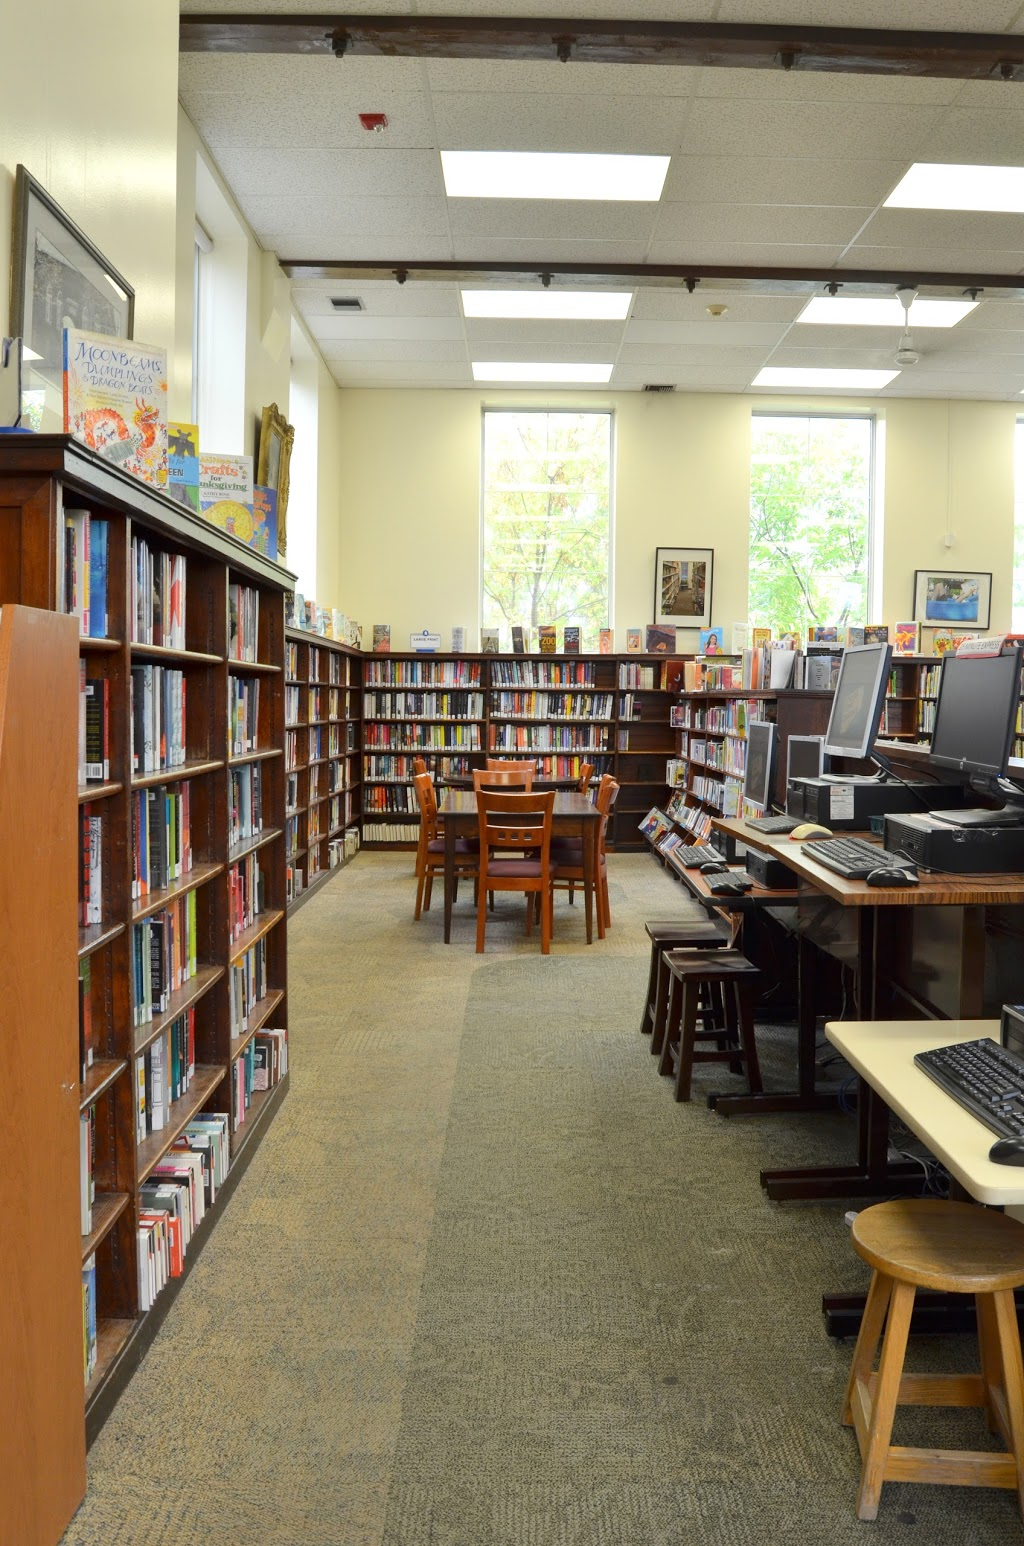 Ottawa Public Library - Rosemount | library | temporary location, 1207 Wellington St W, Ottawa, ON K1Y 2Z8, Canada | 6135802940 OR +1 613-580-2940